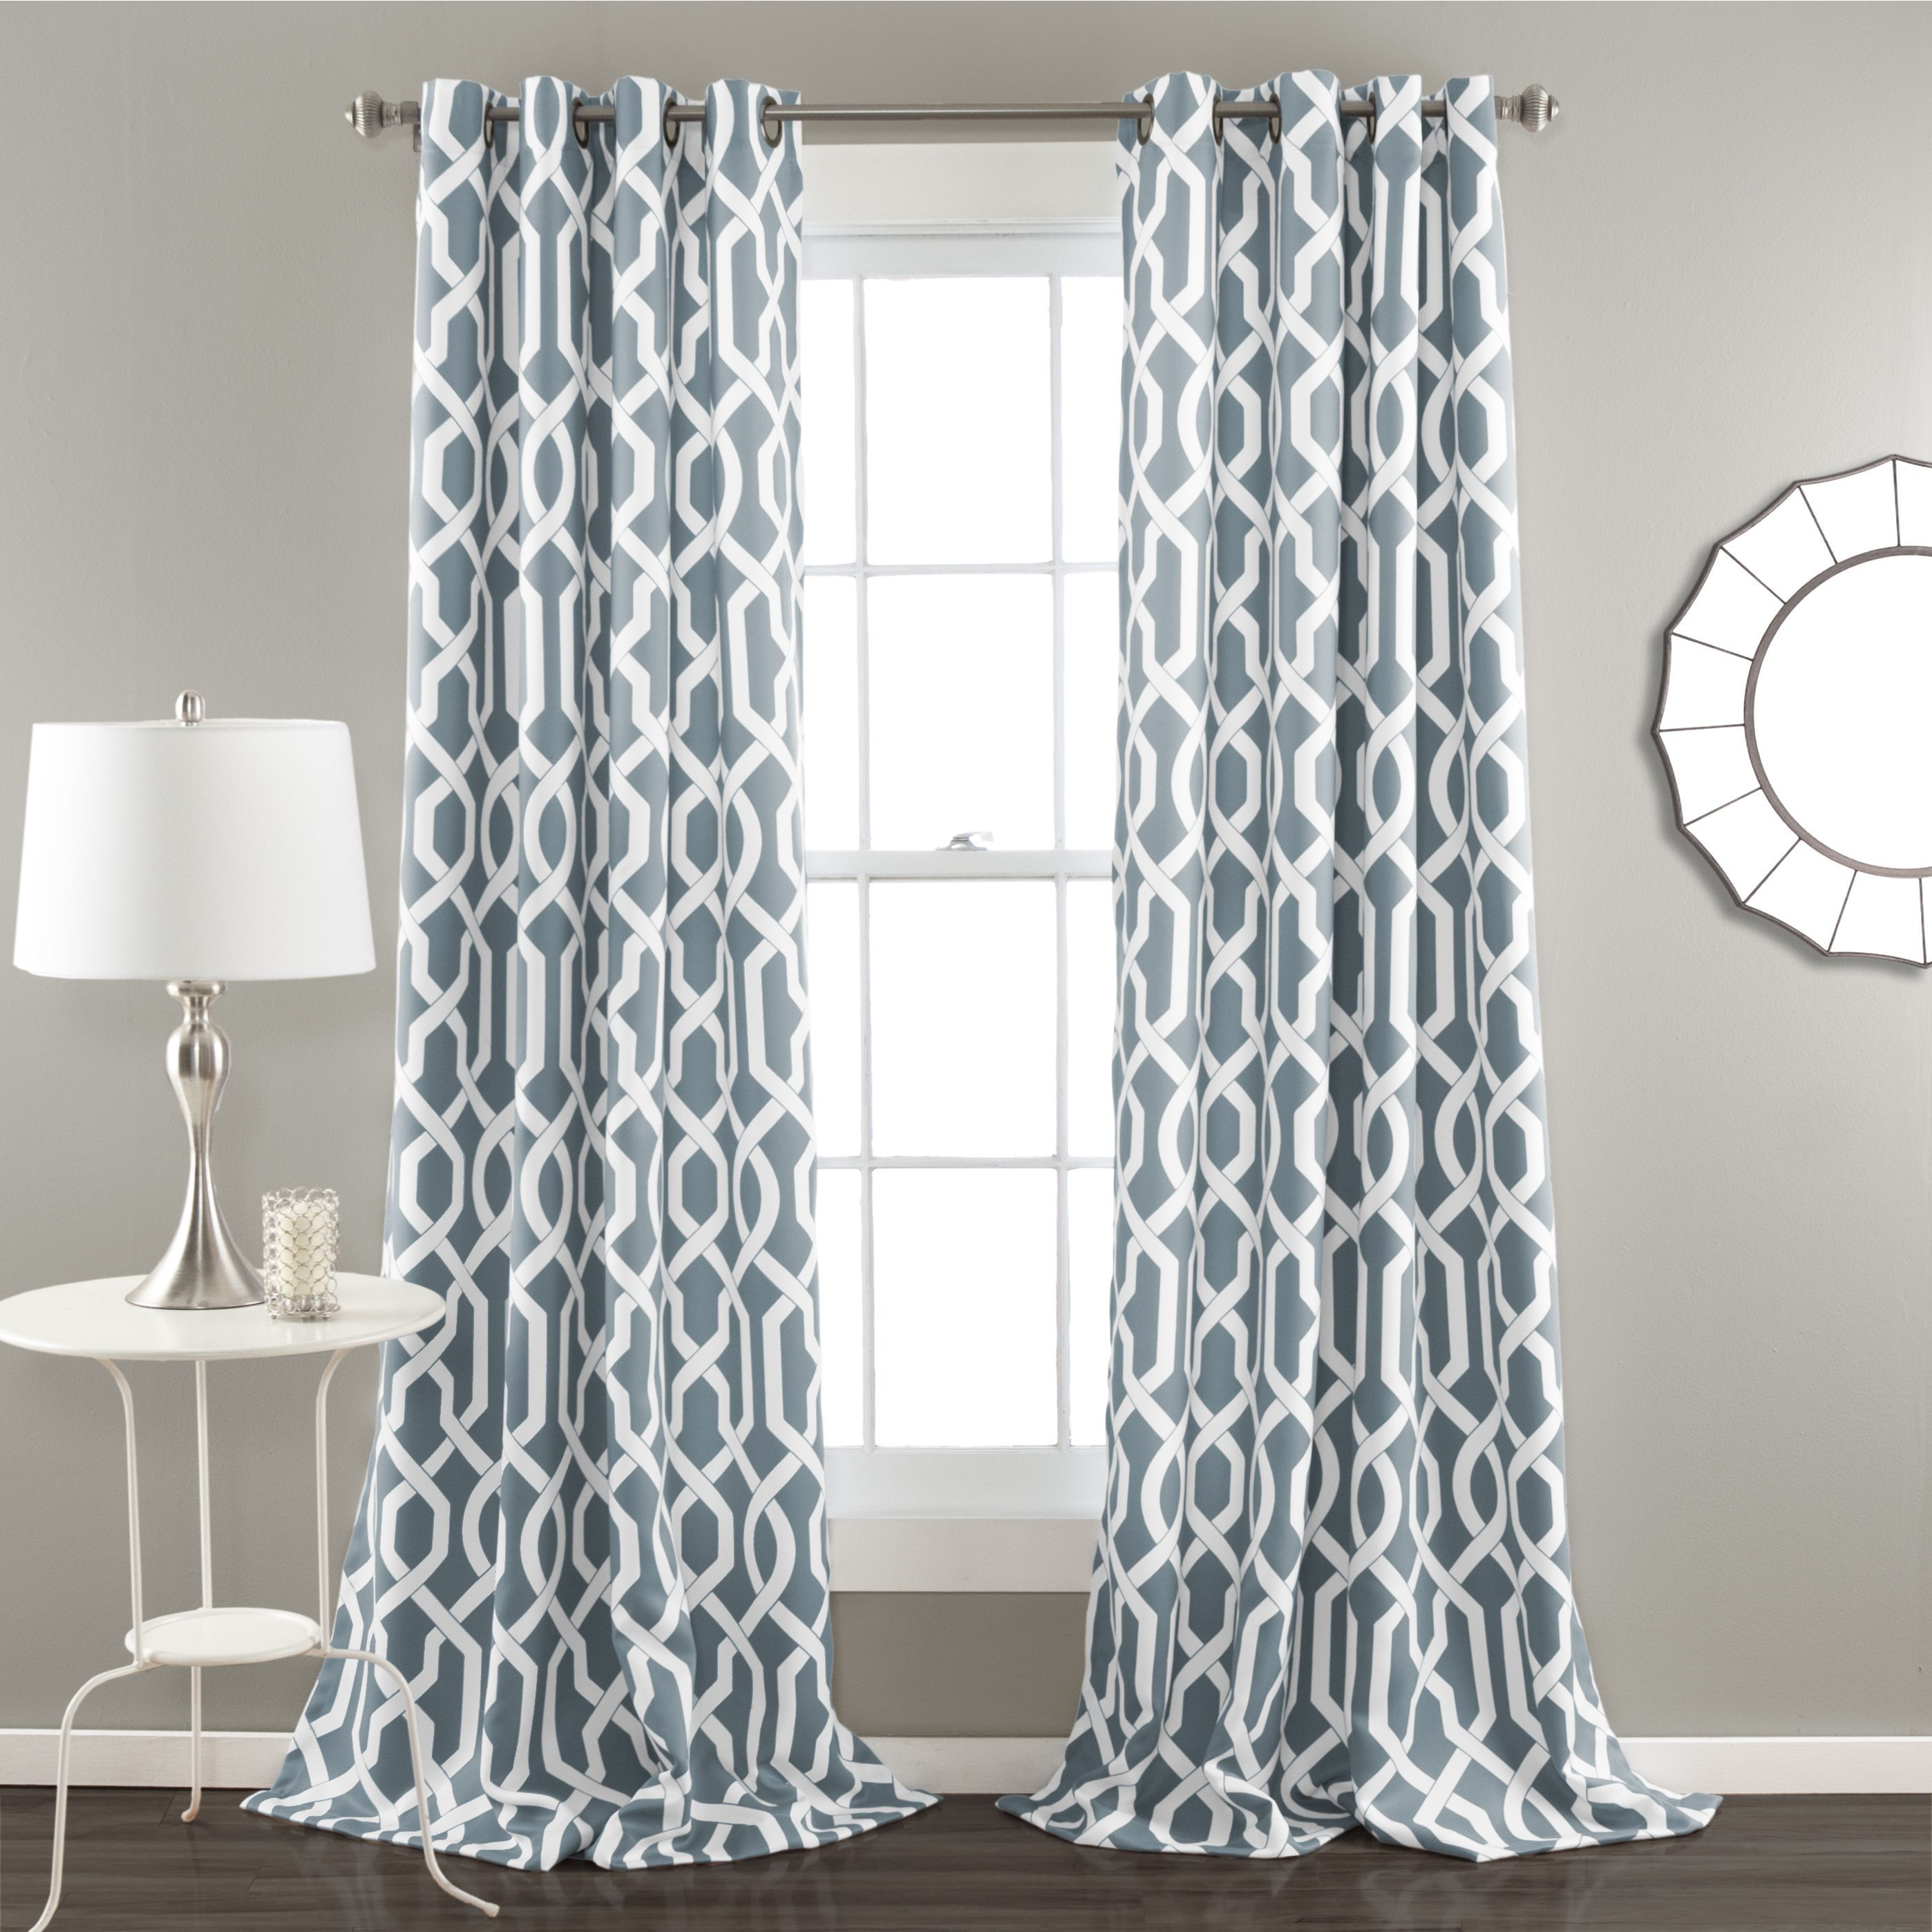 Modern grommet top curtains - Morrocan Style Grommet Top Blackout Panel Pair By I Love Living